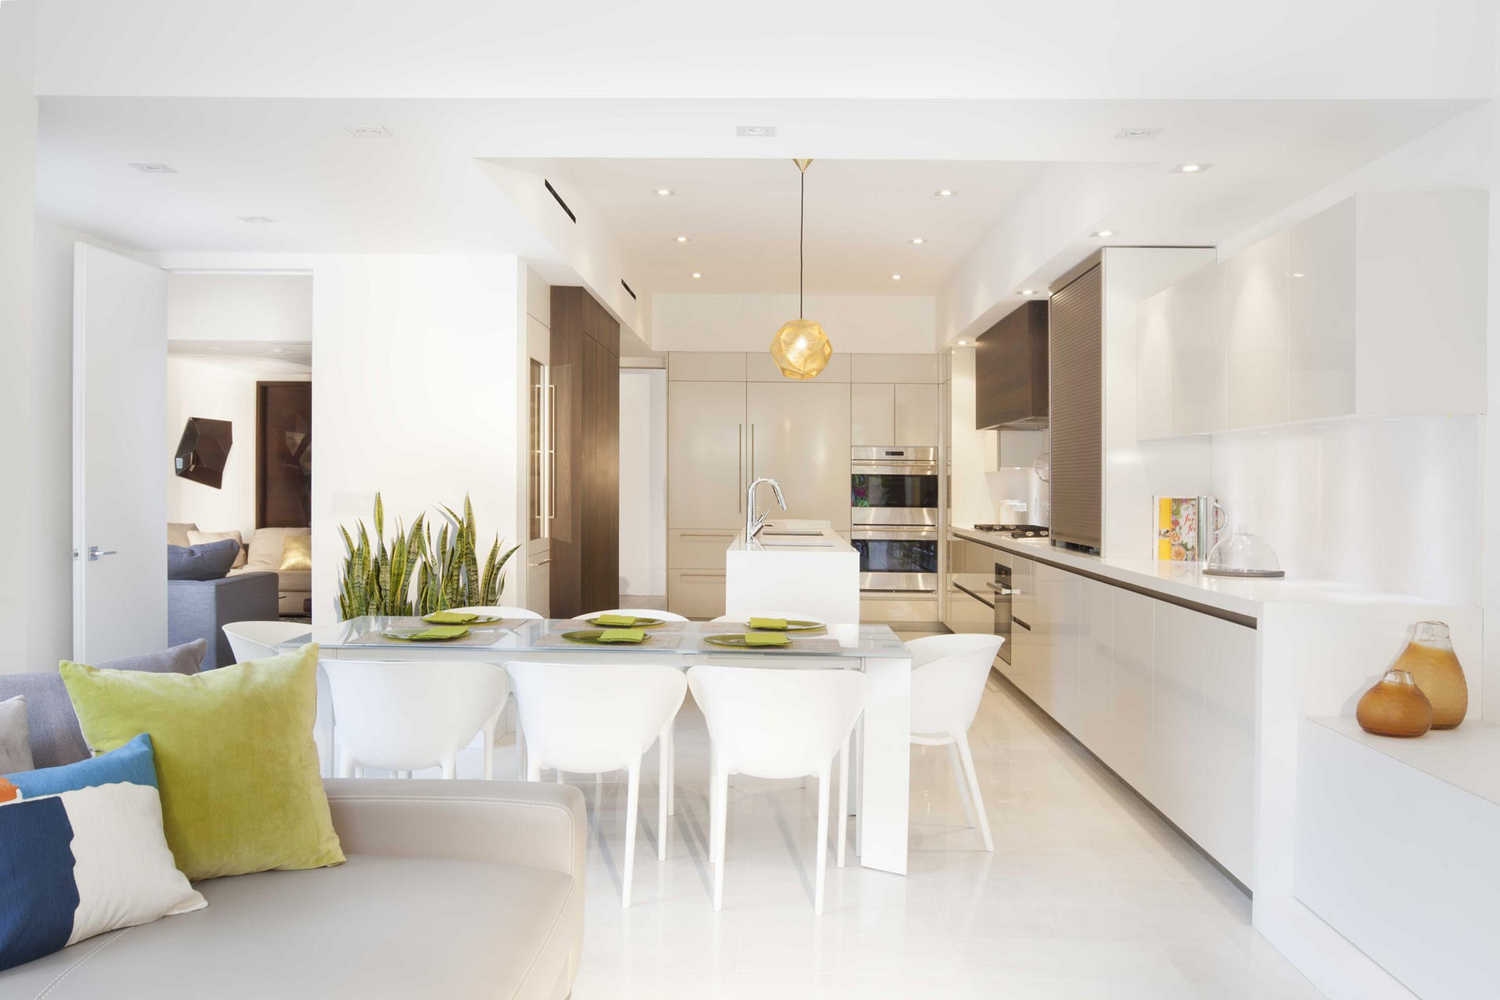 kitchen designers miami weight scale kitchens residential interior design from dkor interiors